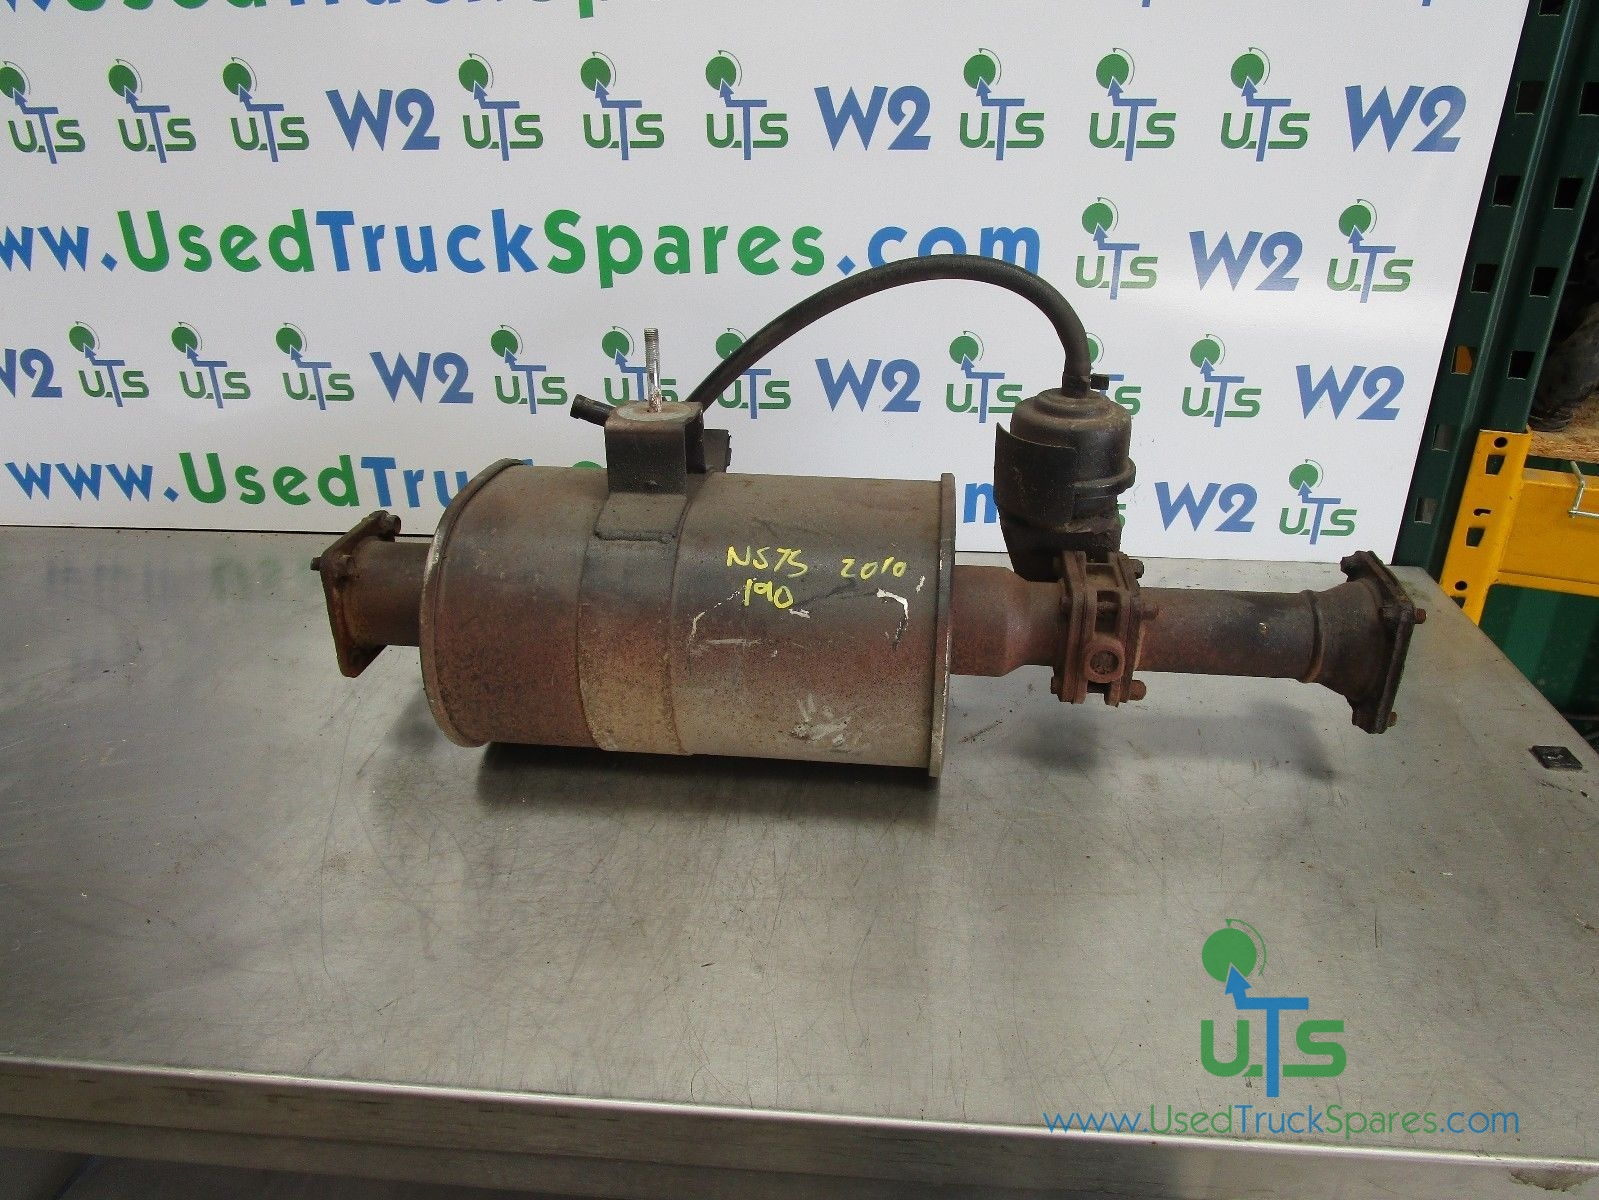 ISUZU N75 190 EXHAUST SILENCER AND PIPE